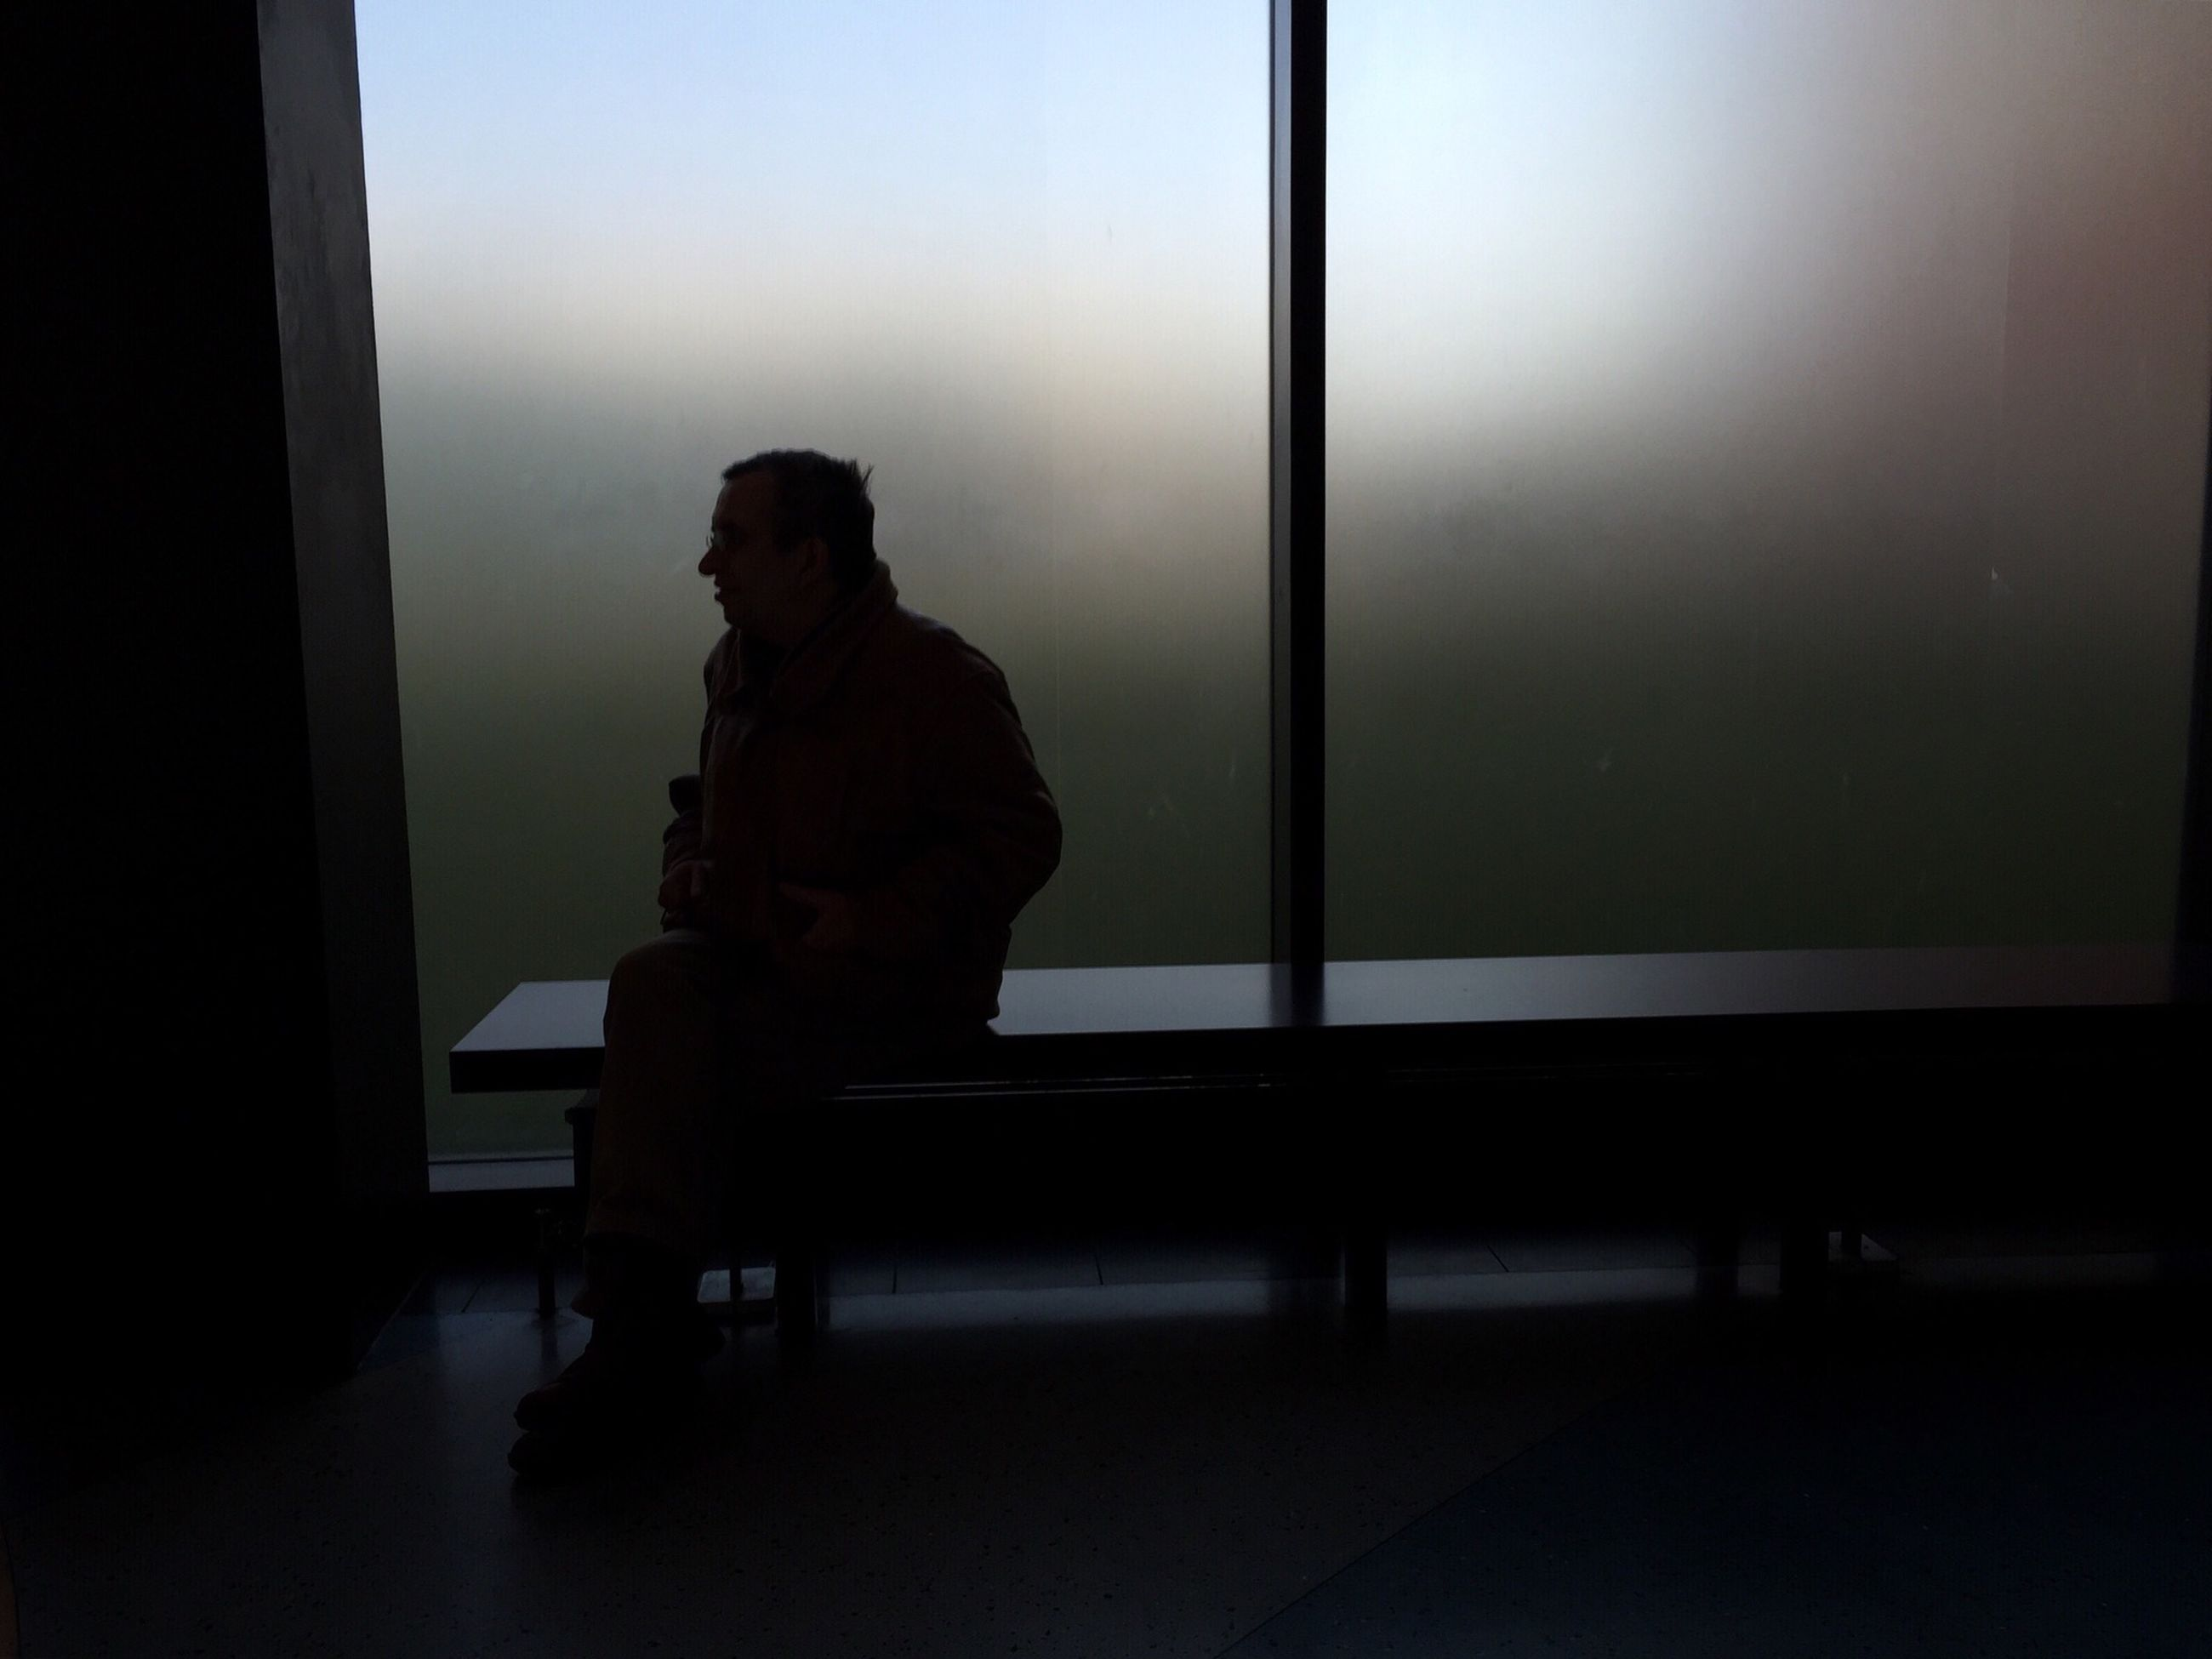 indoors, window, glass - material, home interior, transparent, silhouette, sitting, lifestyles, looking through window, leisure activity, standing, three quarter length, human representation, contemplation, young adult, built structure, side view, full length